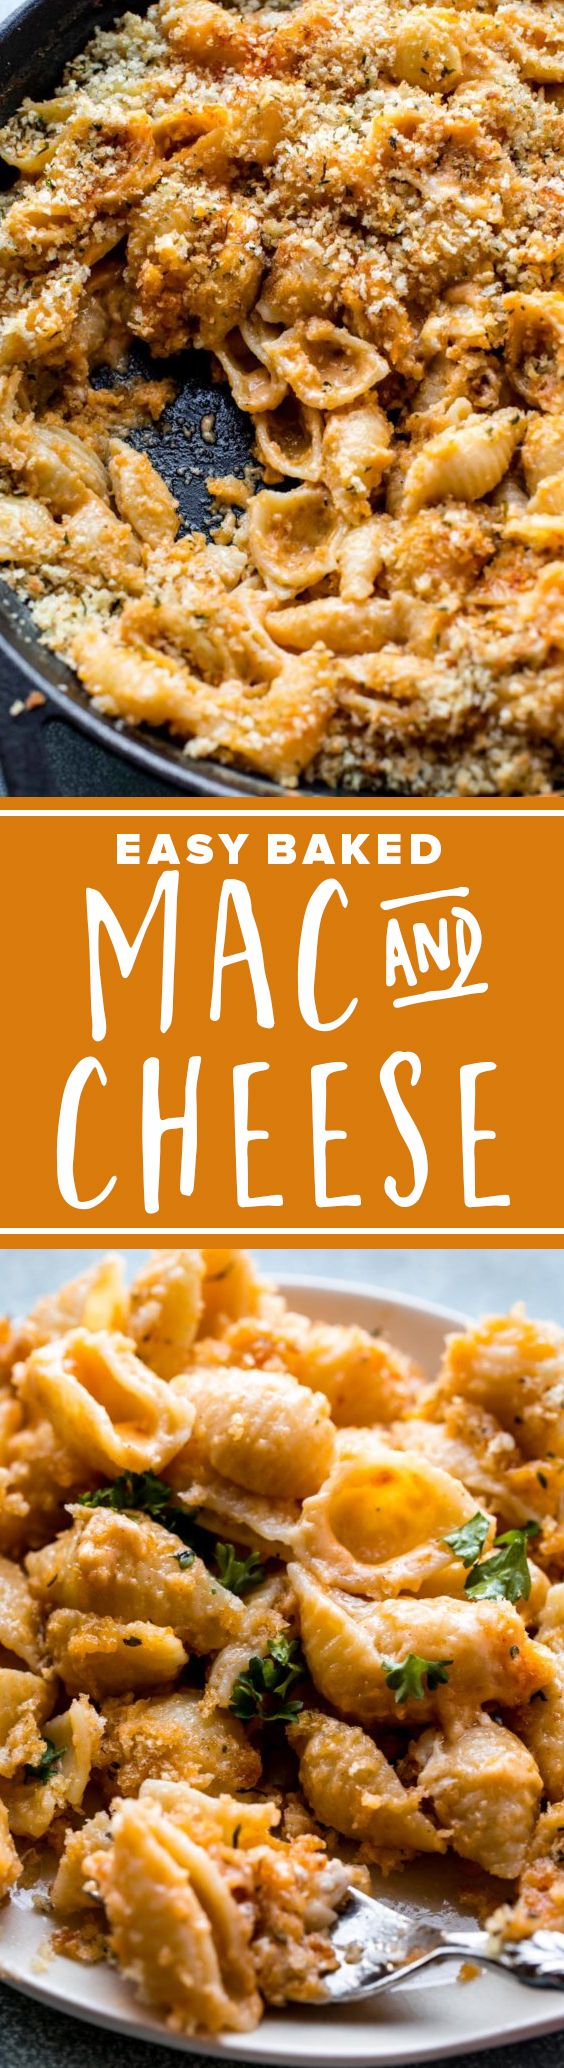 Easy baked macaroni and cheese with cheddar cheese for an easy weeknight comfort food dinner!